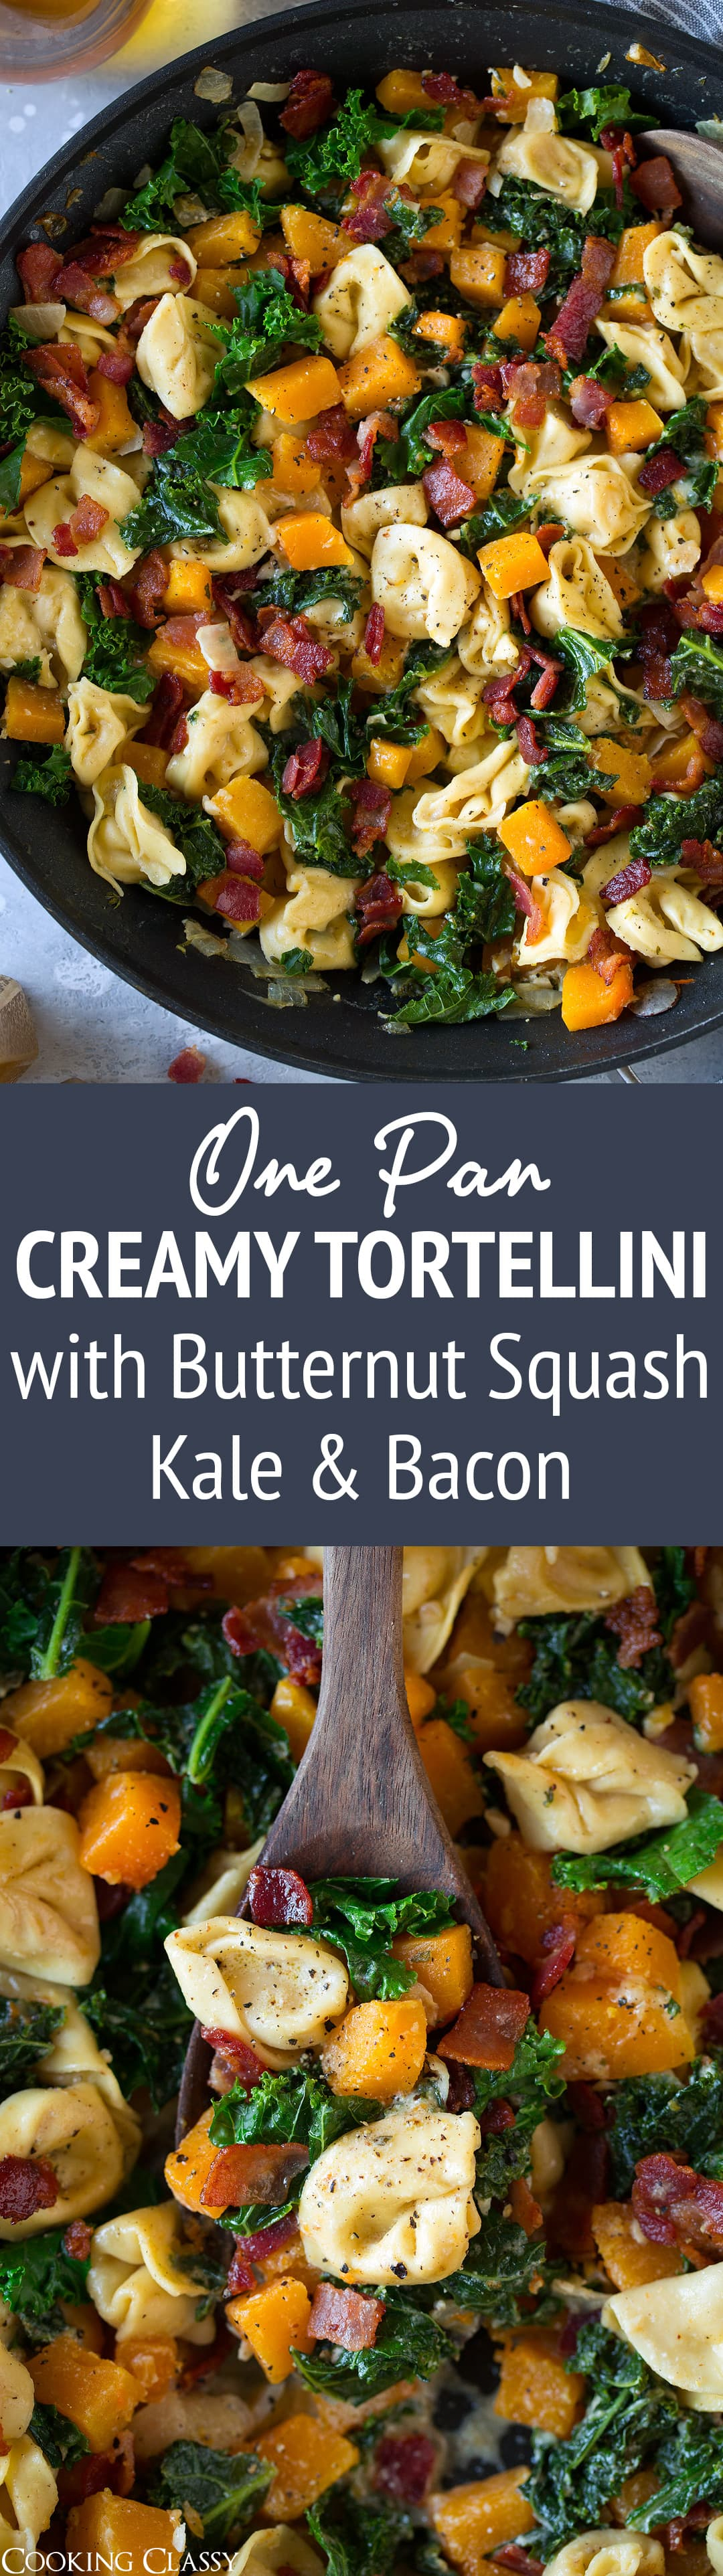 One Pan Creamy Tortellini with Butternut Squash Kale and Bacon - This is the perfect fall tortellini dinner! Deliciously creamy and cheesy with an amazing flavor combination. So hearty and so satisfying! #tortellini #butternutsquash #kale #bacon #skillet #recipe